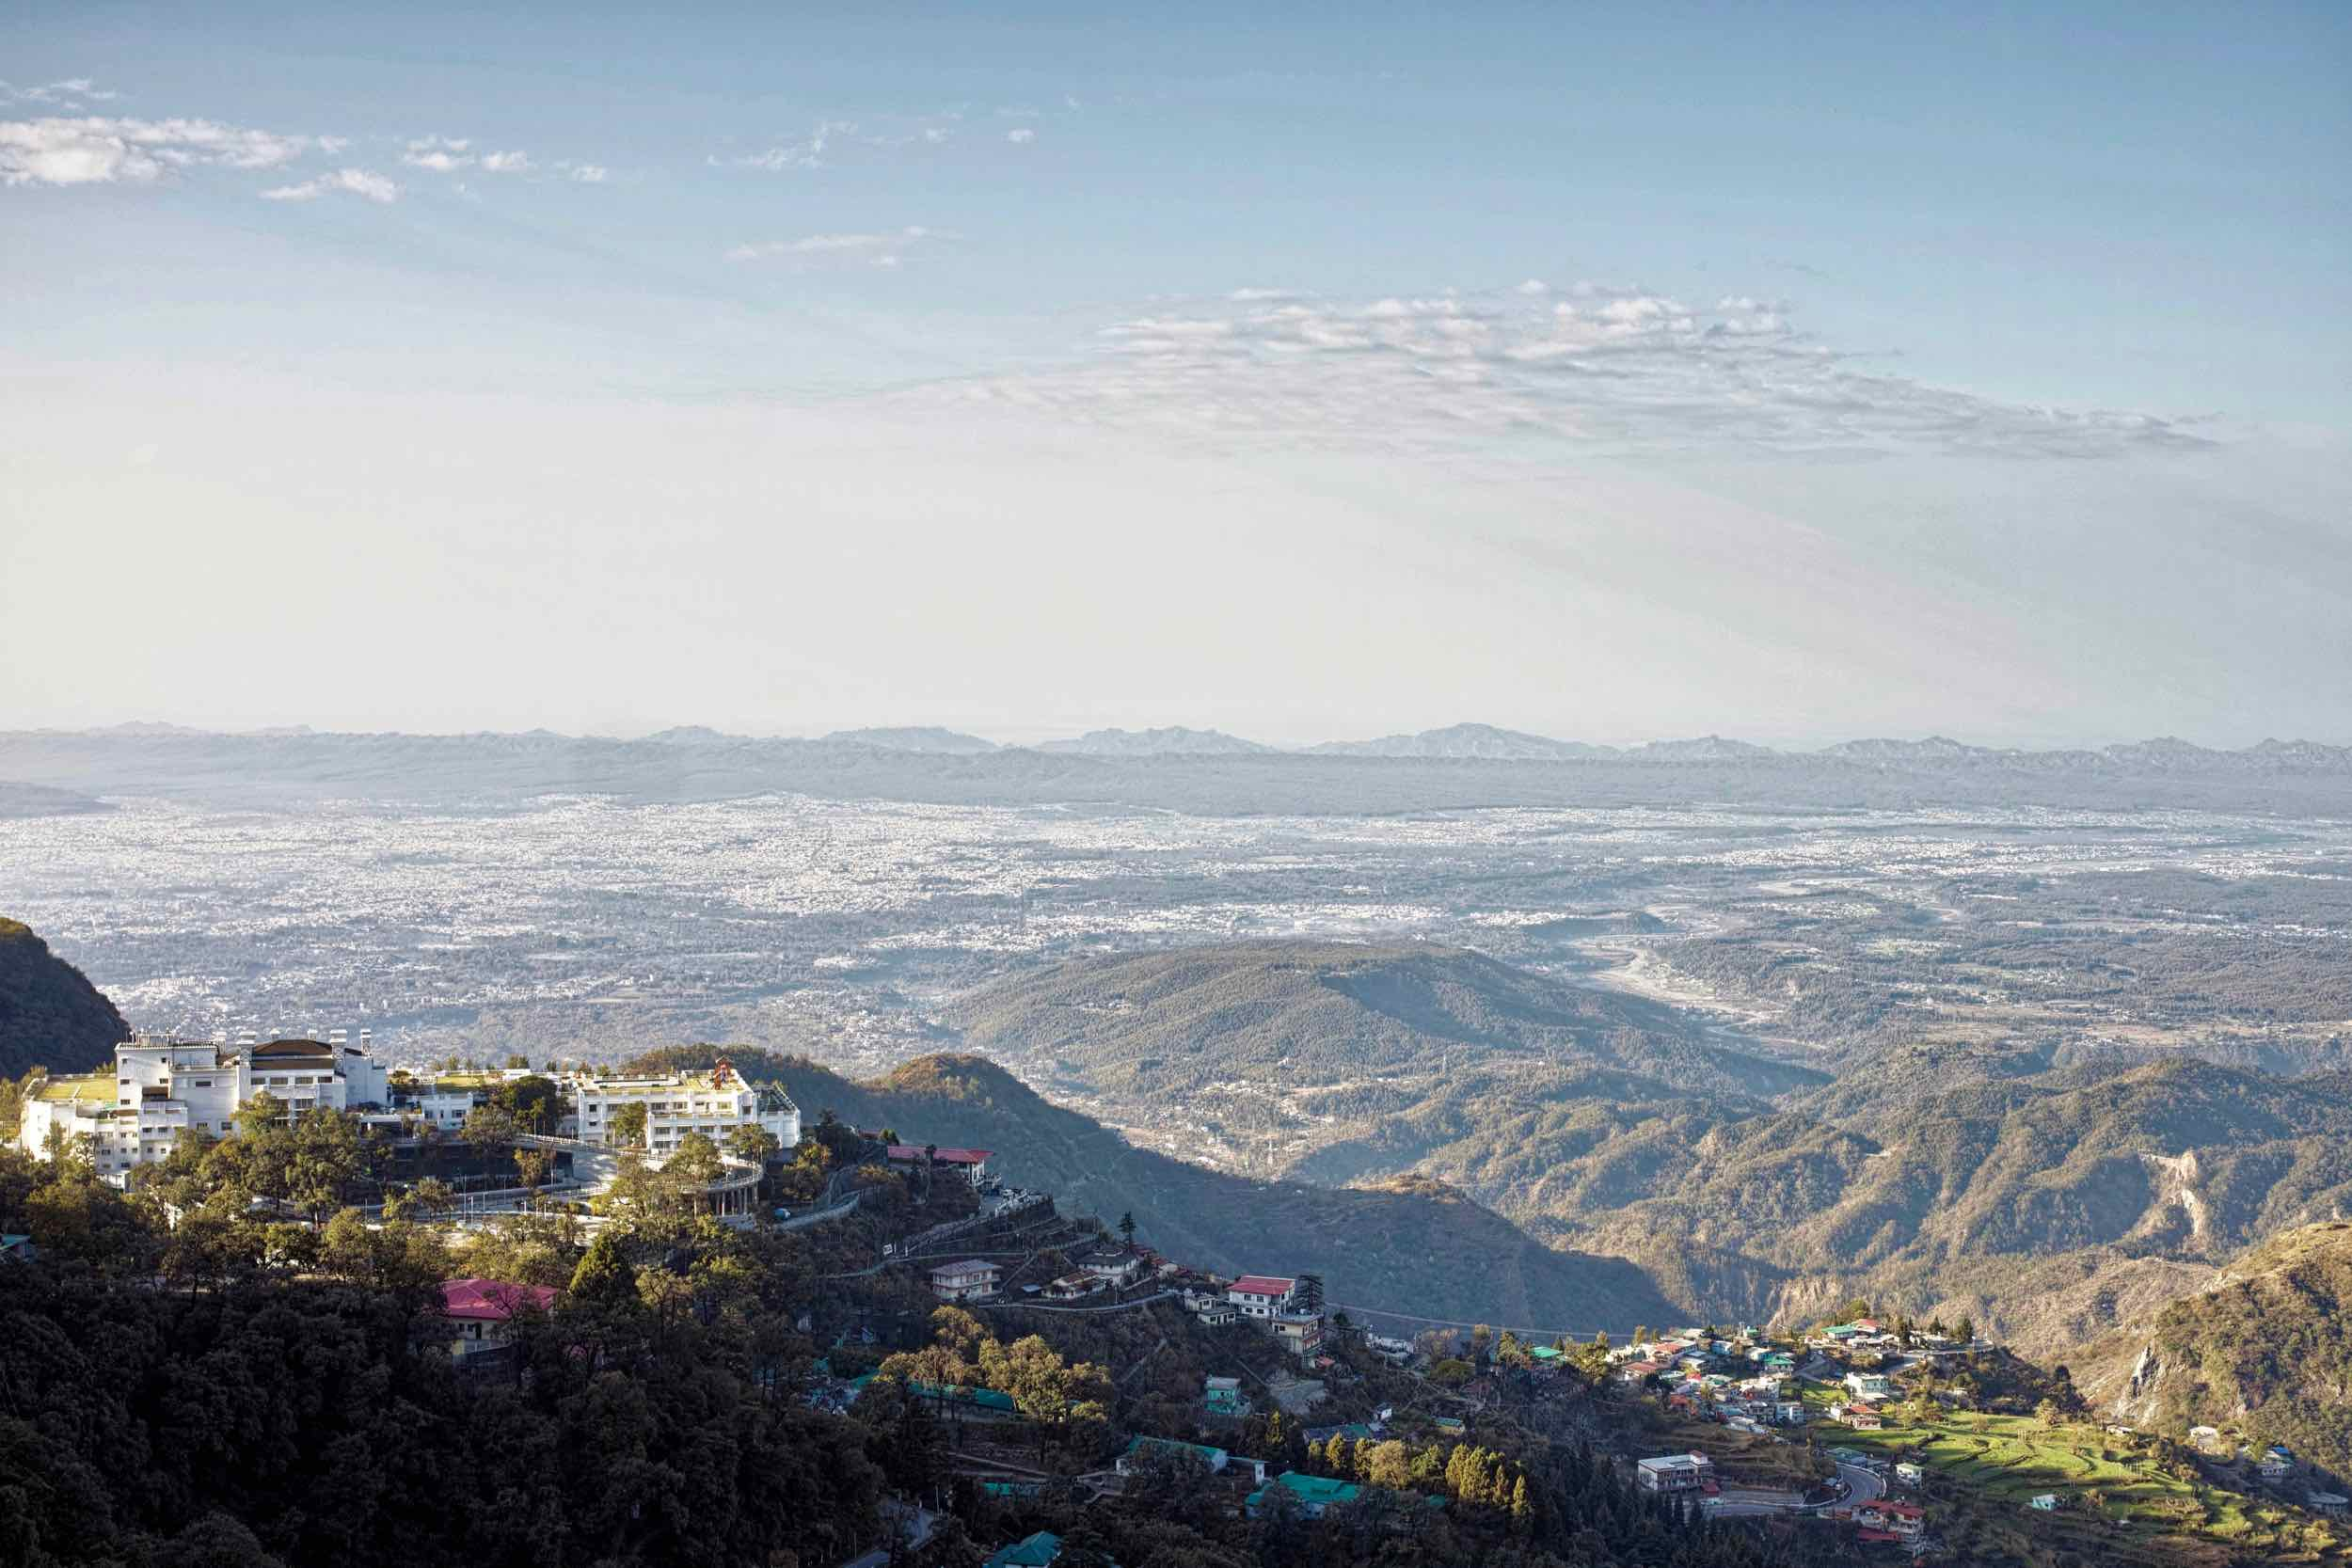 Looking over Doon valley from one of the viewpoints along the way